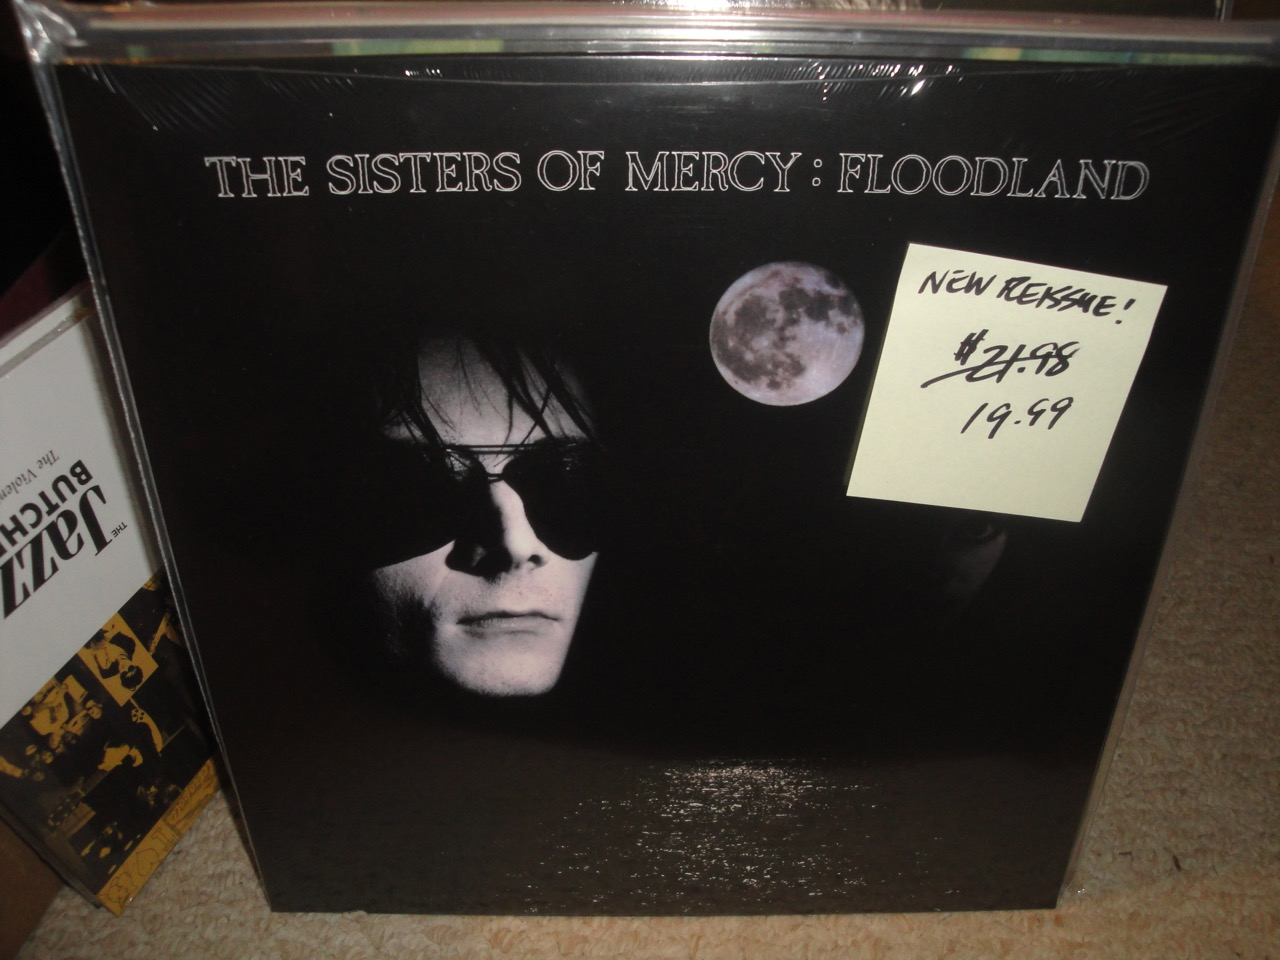 The Sisters of Mercy - Floodland - Vinyl, Reissue, Elektra, 2018